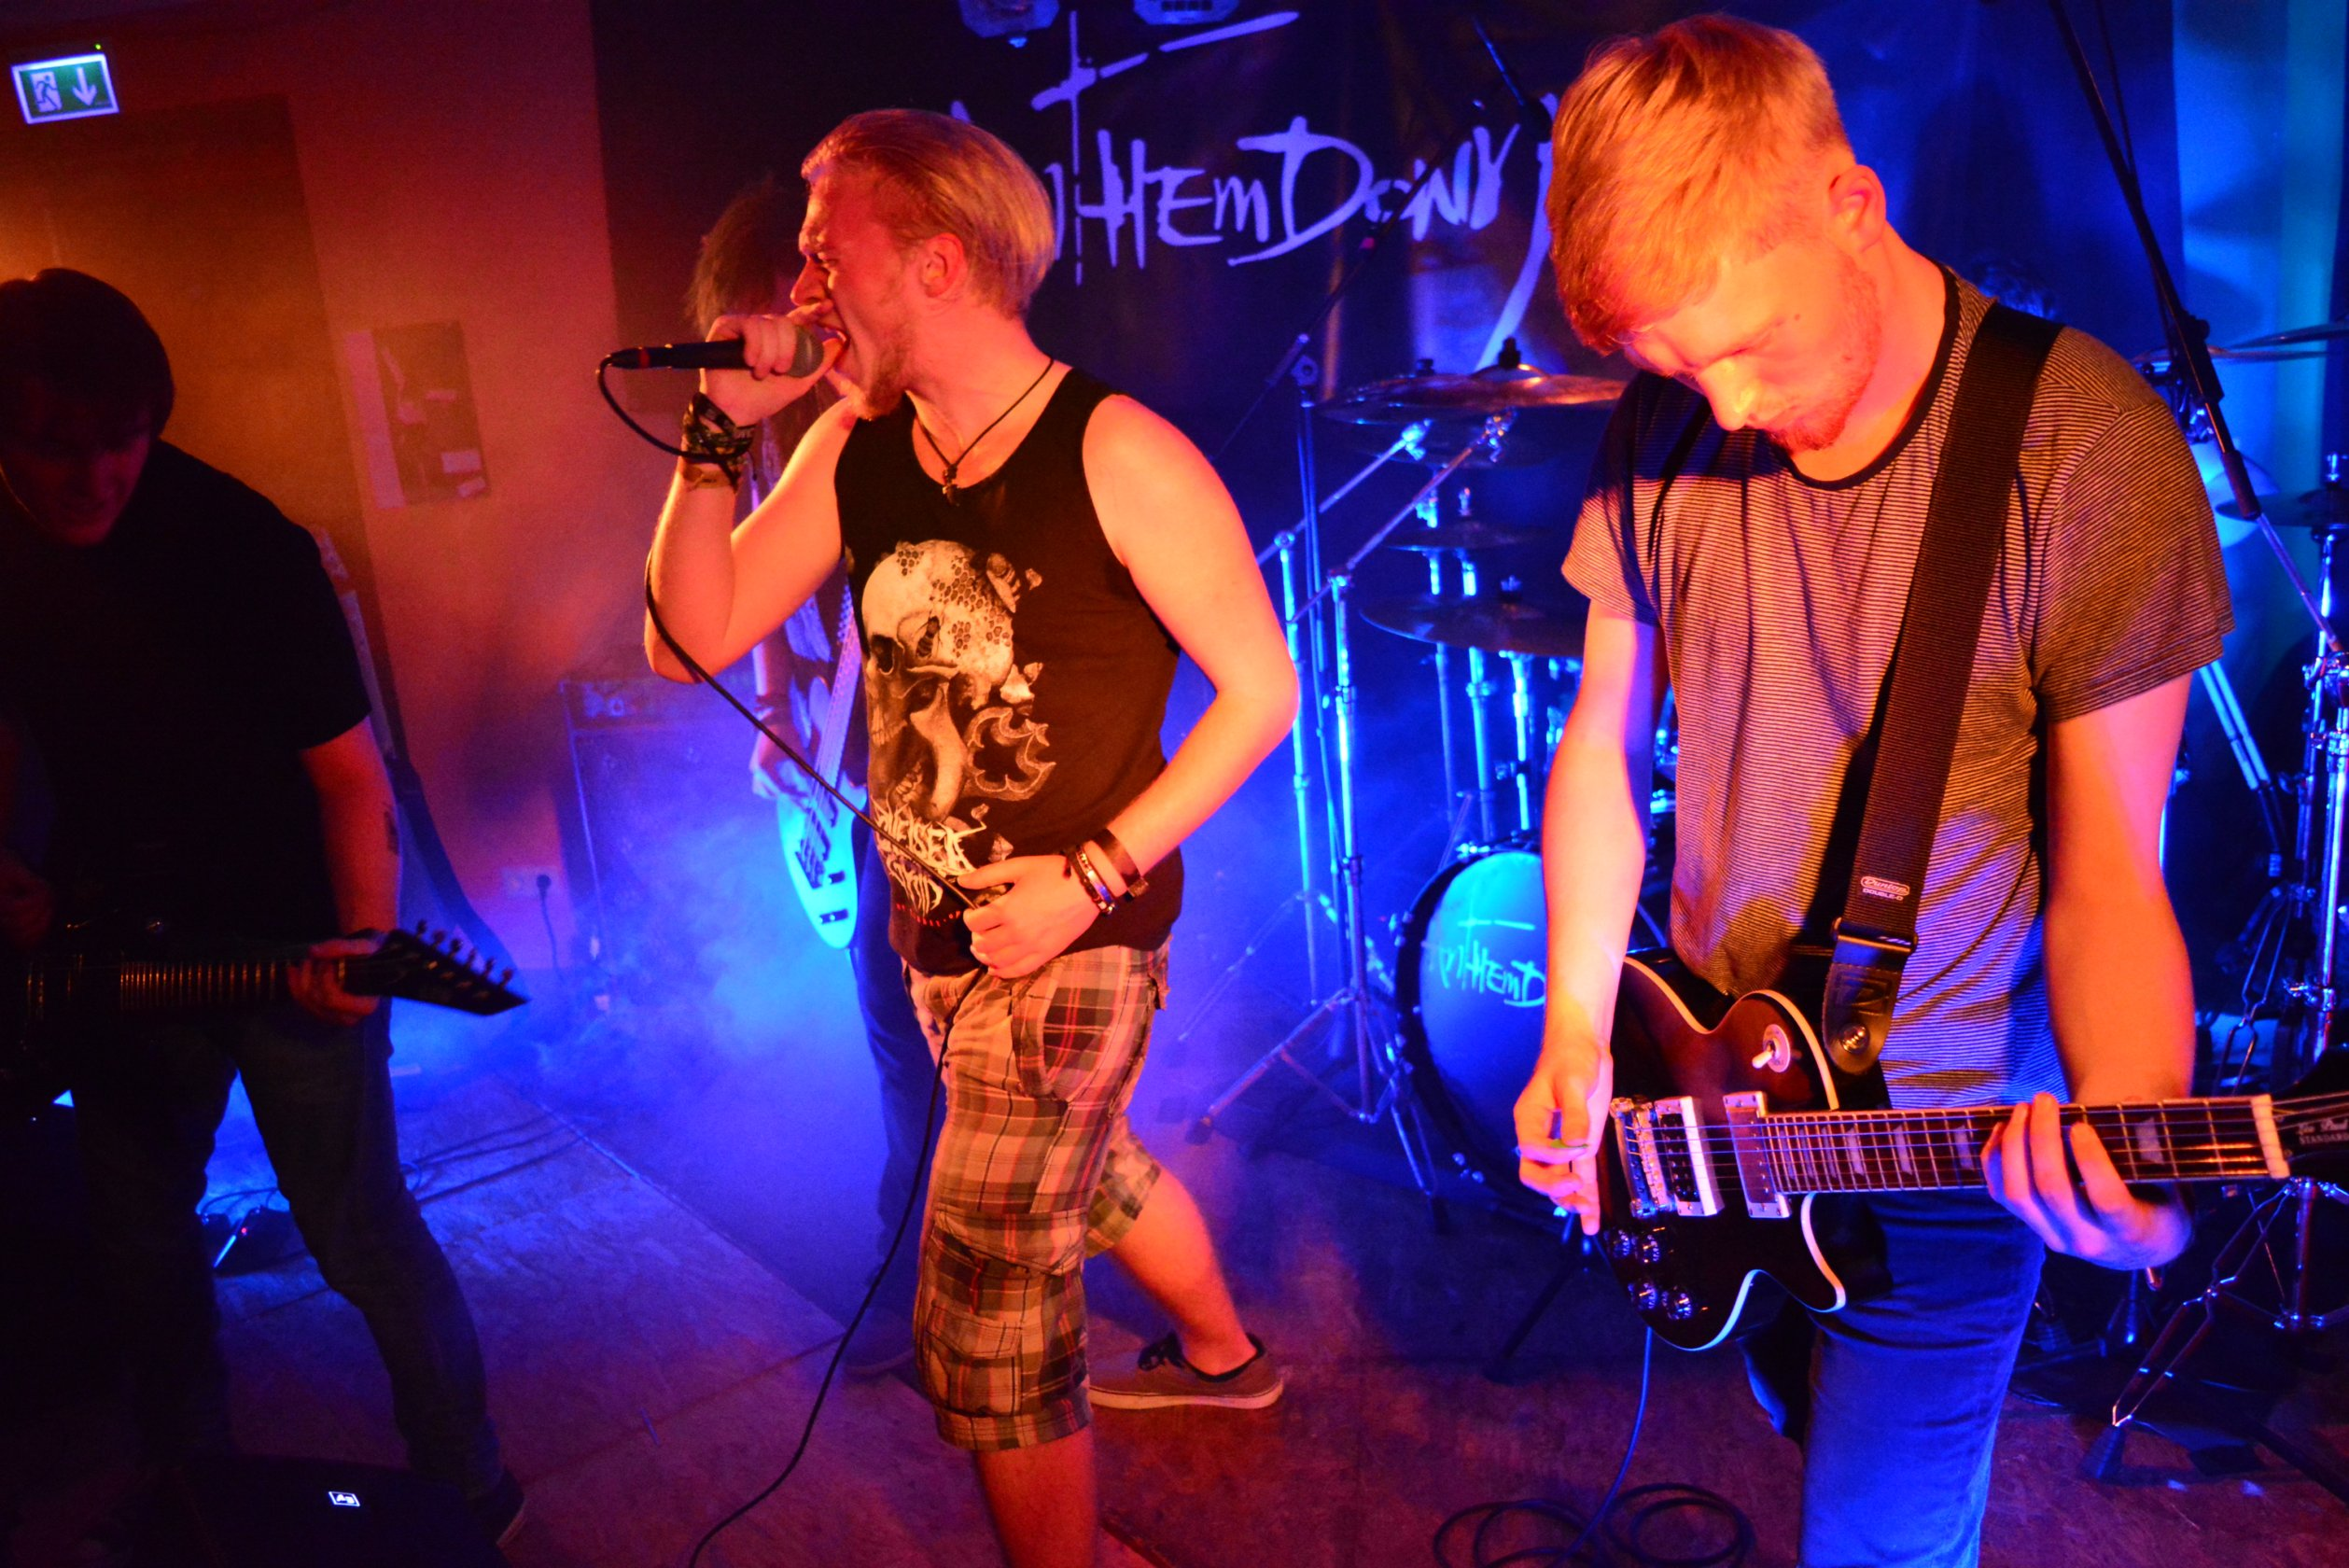 Anthemdown Rock in der Region 2015